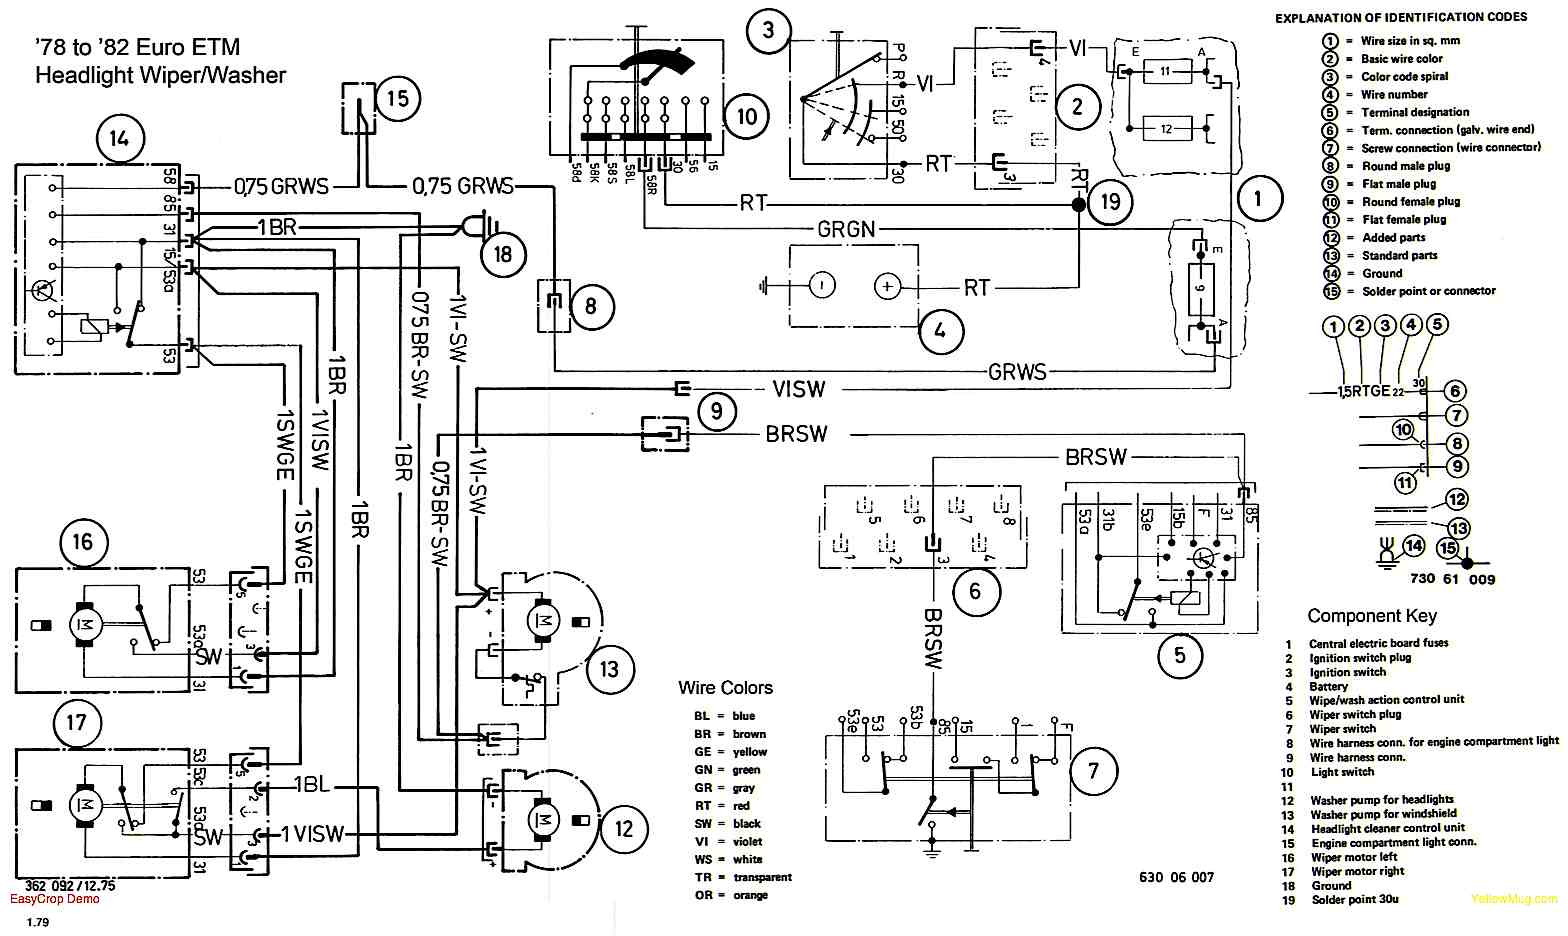 need the ece (european) wiring diagram 2011 mini cooper s headlight wiring schematic